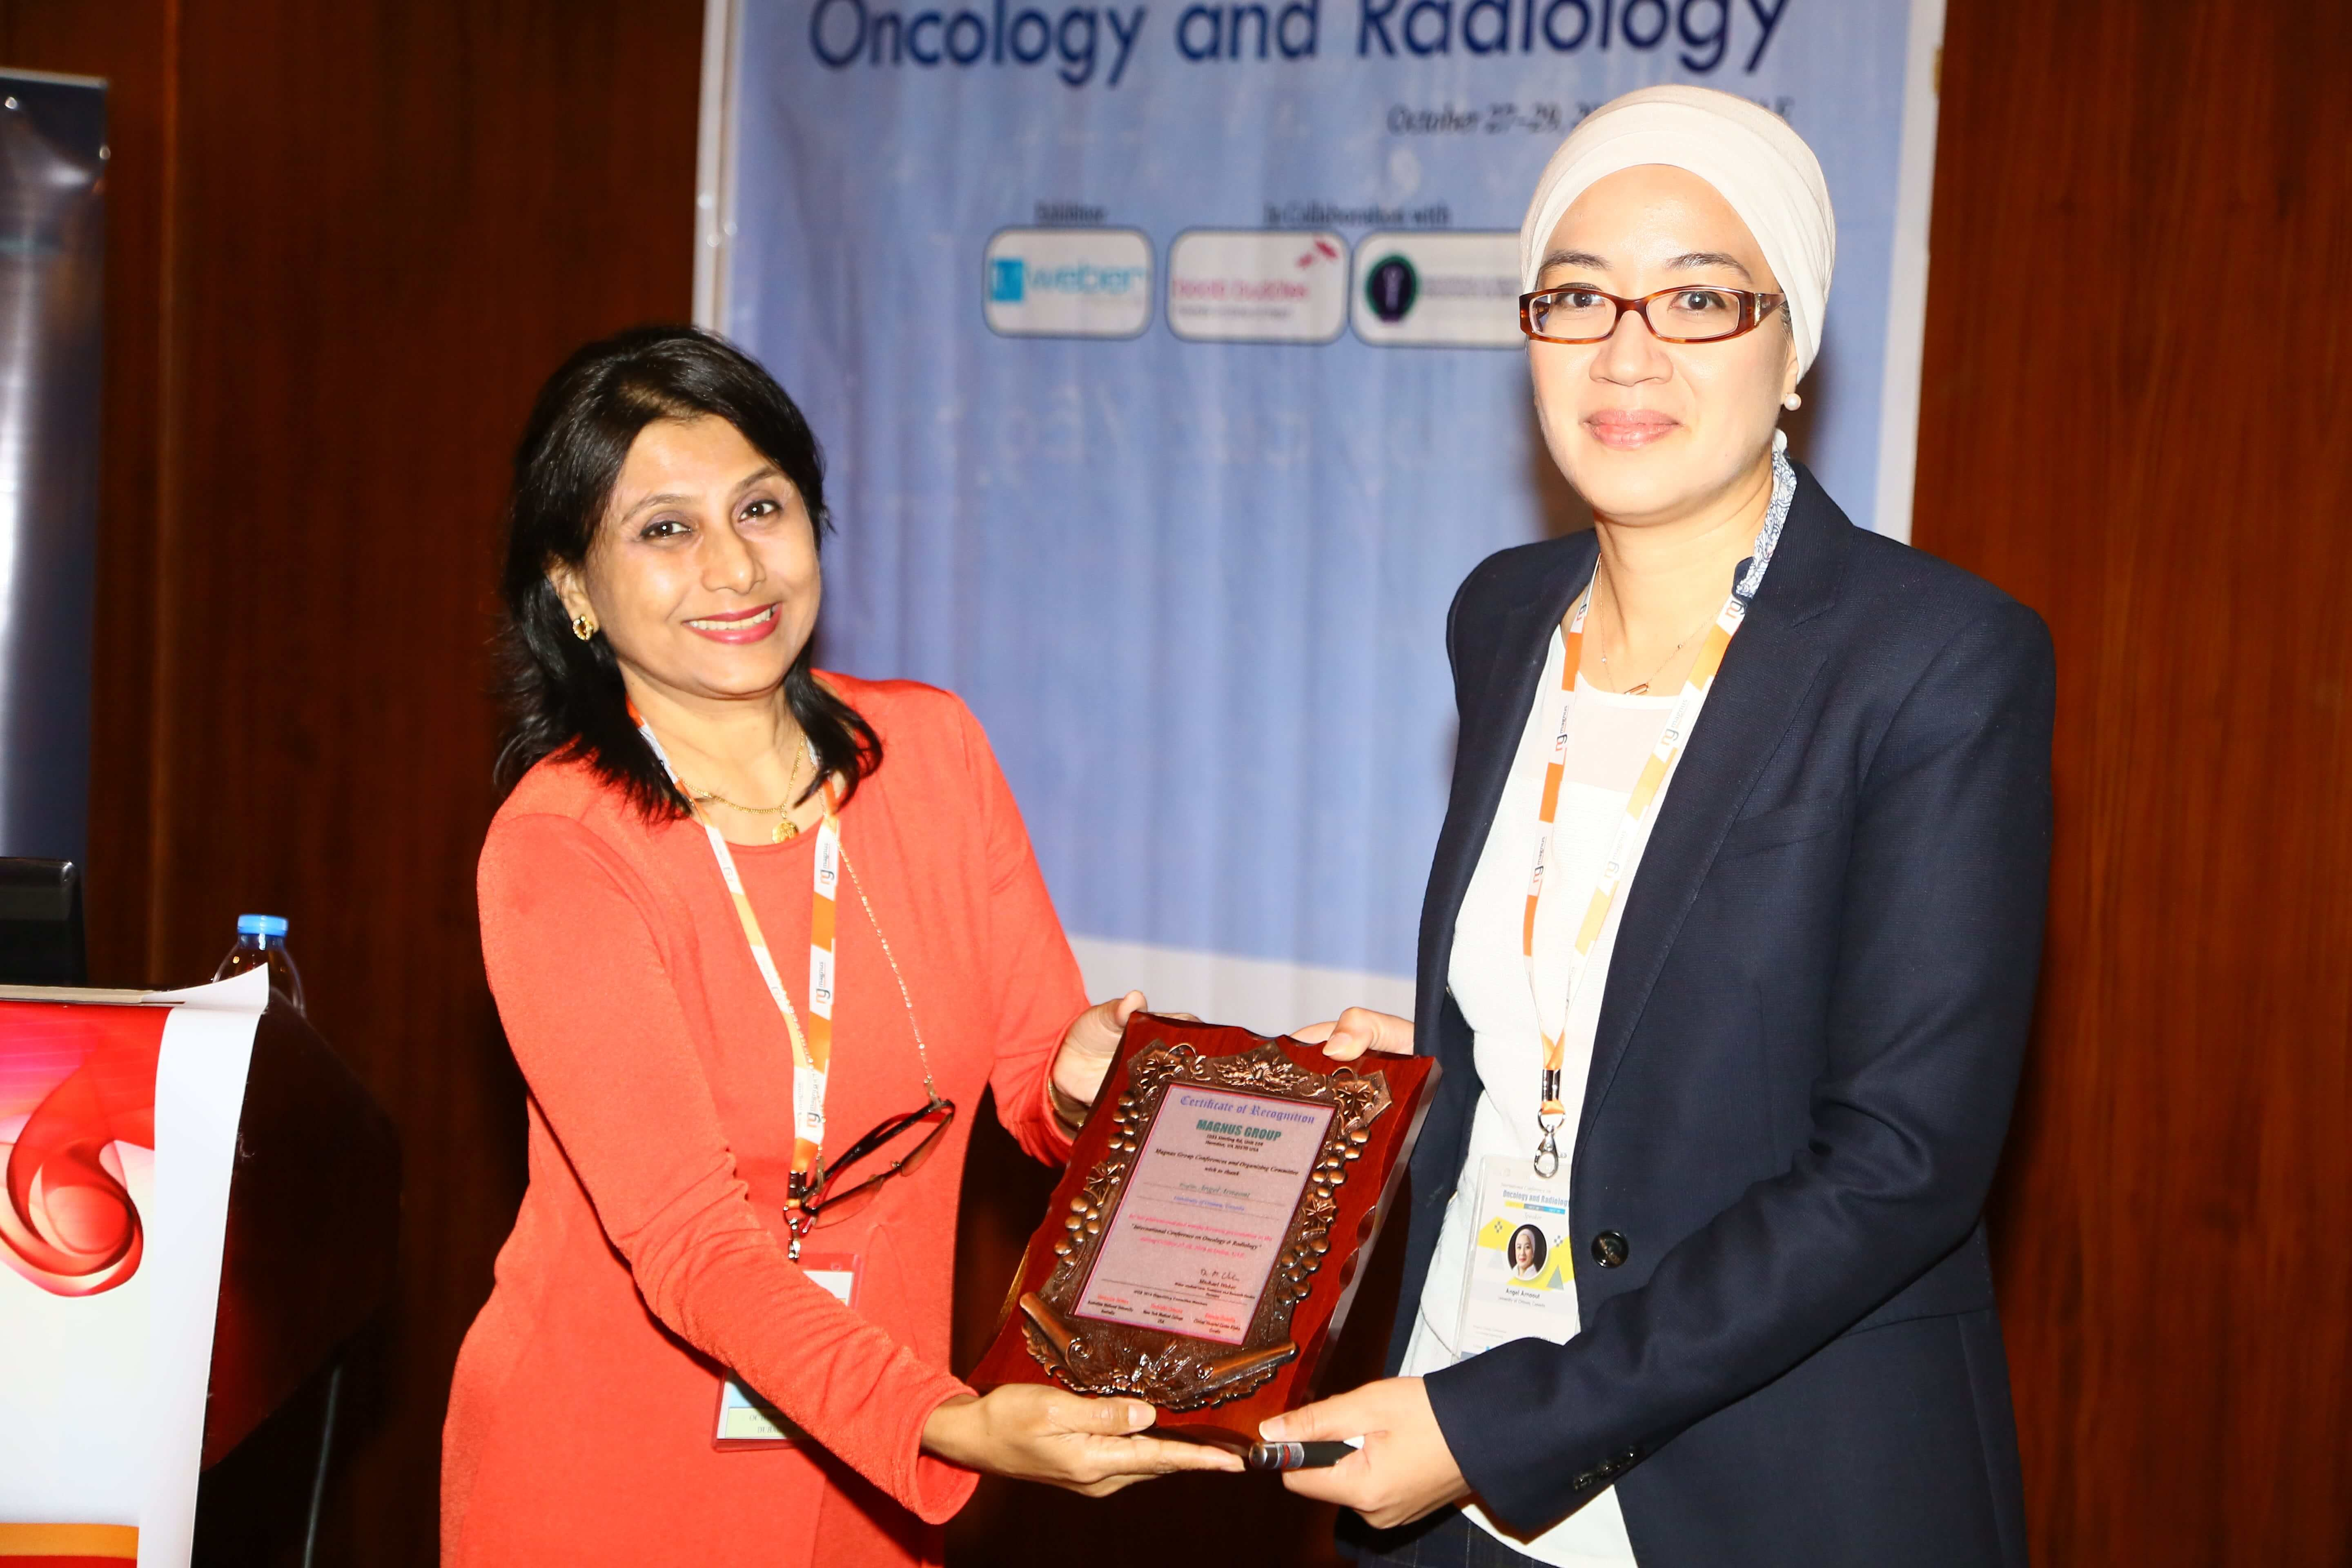 Cancer conference - Dr. Angel Arnaout